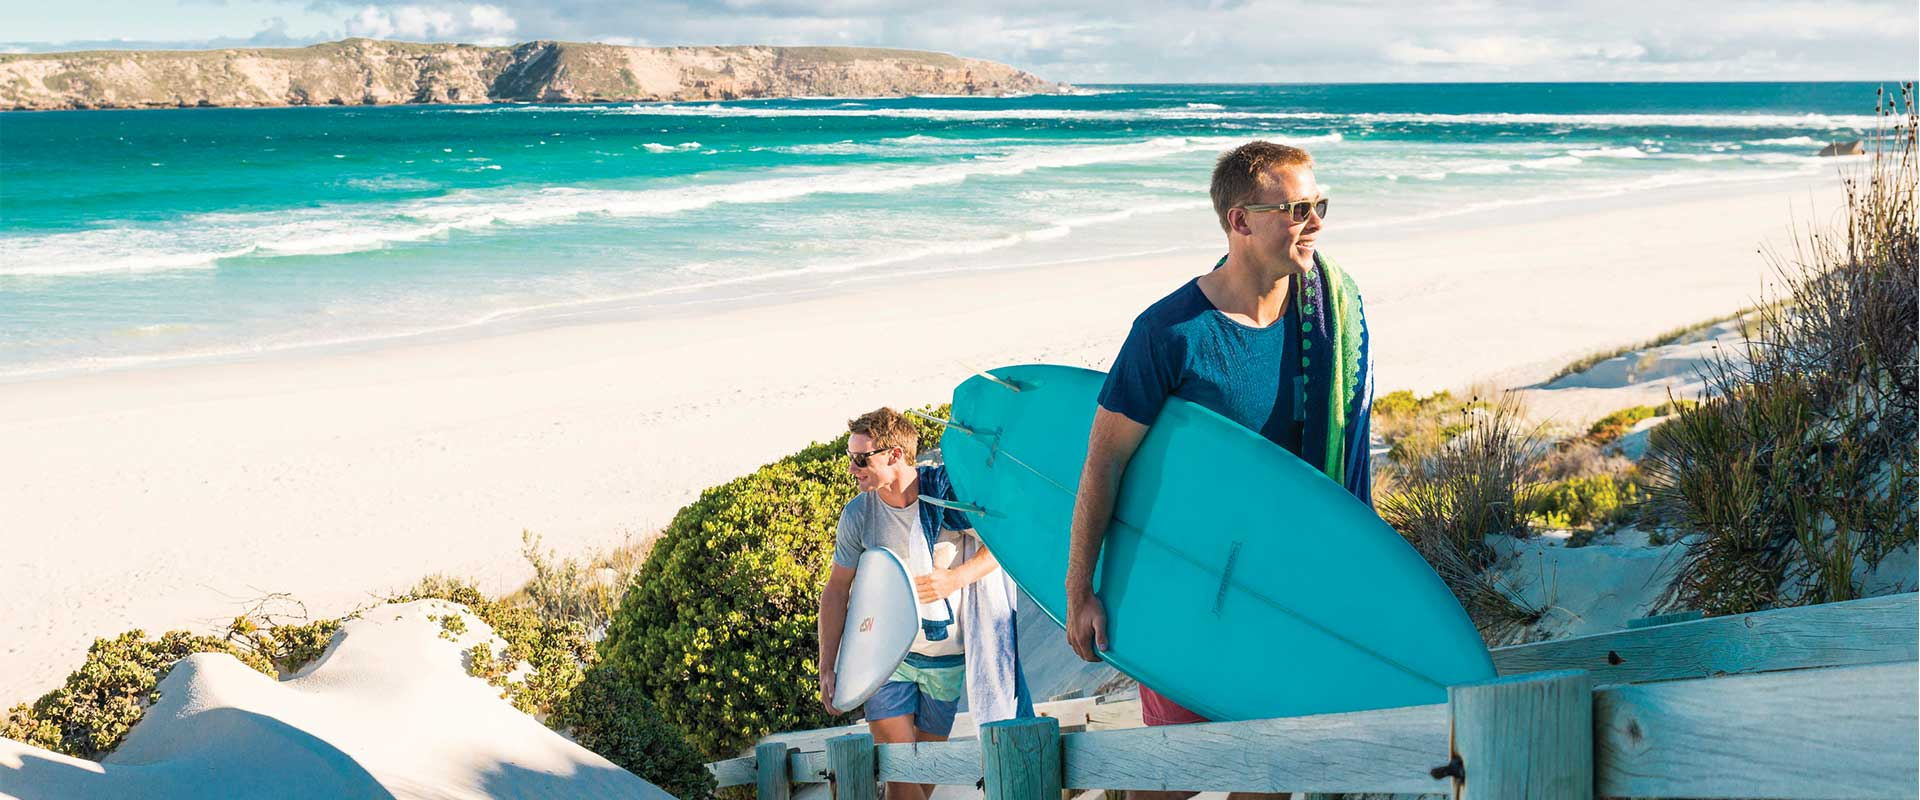 Surfing, Eyre Peninsula